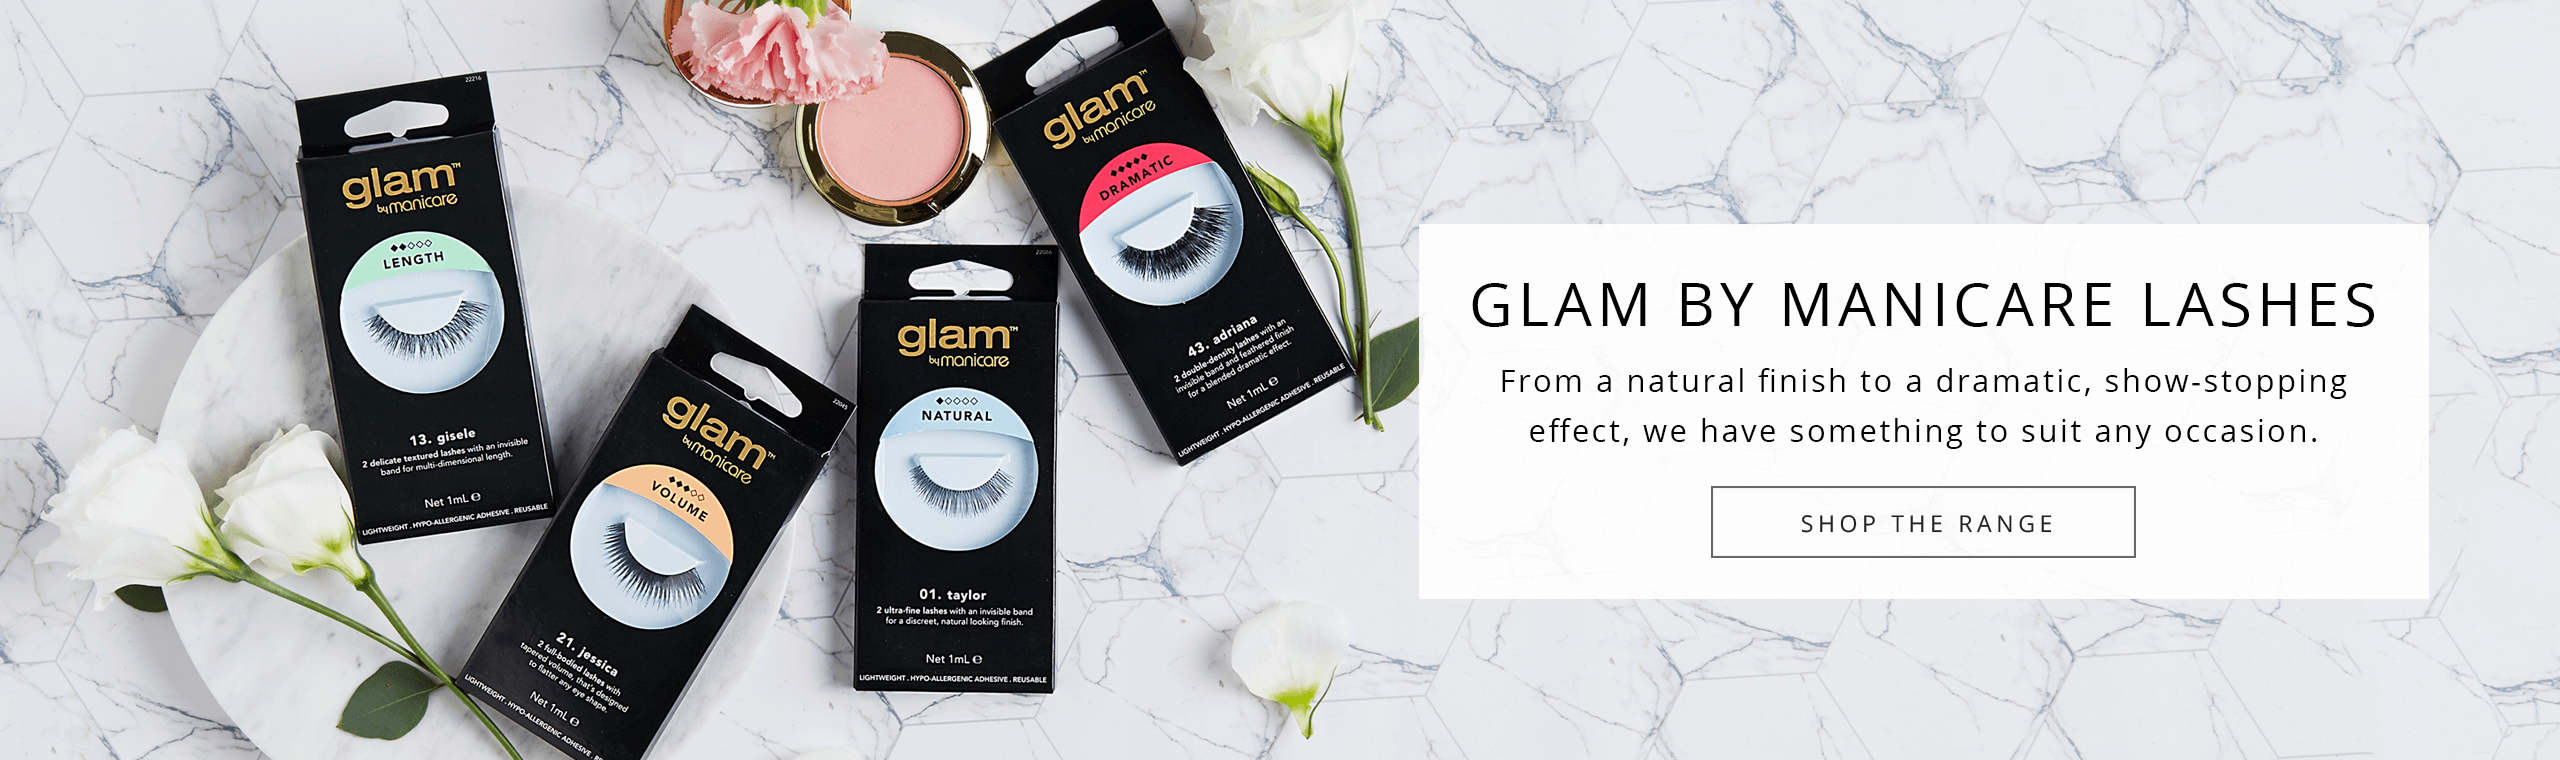 GLAM BY MANICARE LASHES From a natural finish to a dramatic, show-stopping effect, we have something to suit any occasion. Shop the range.